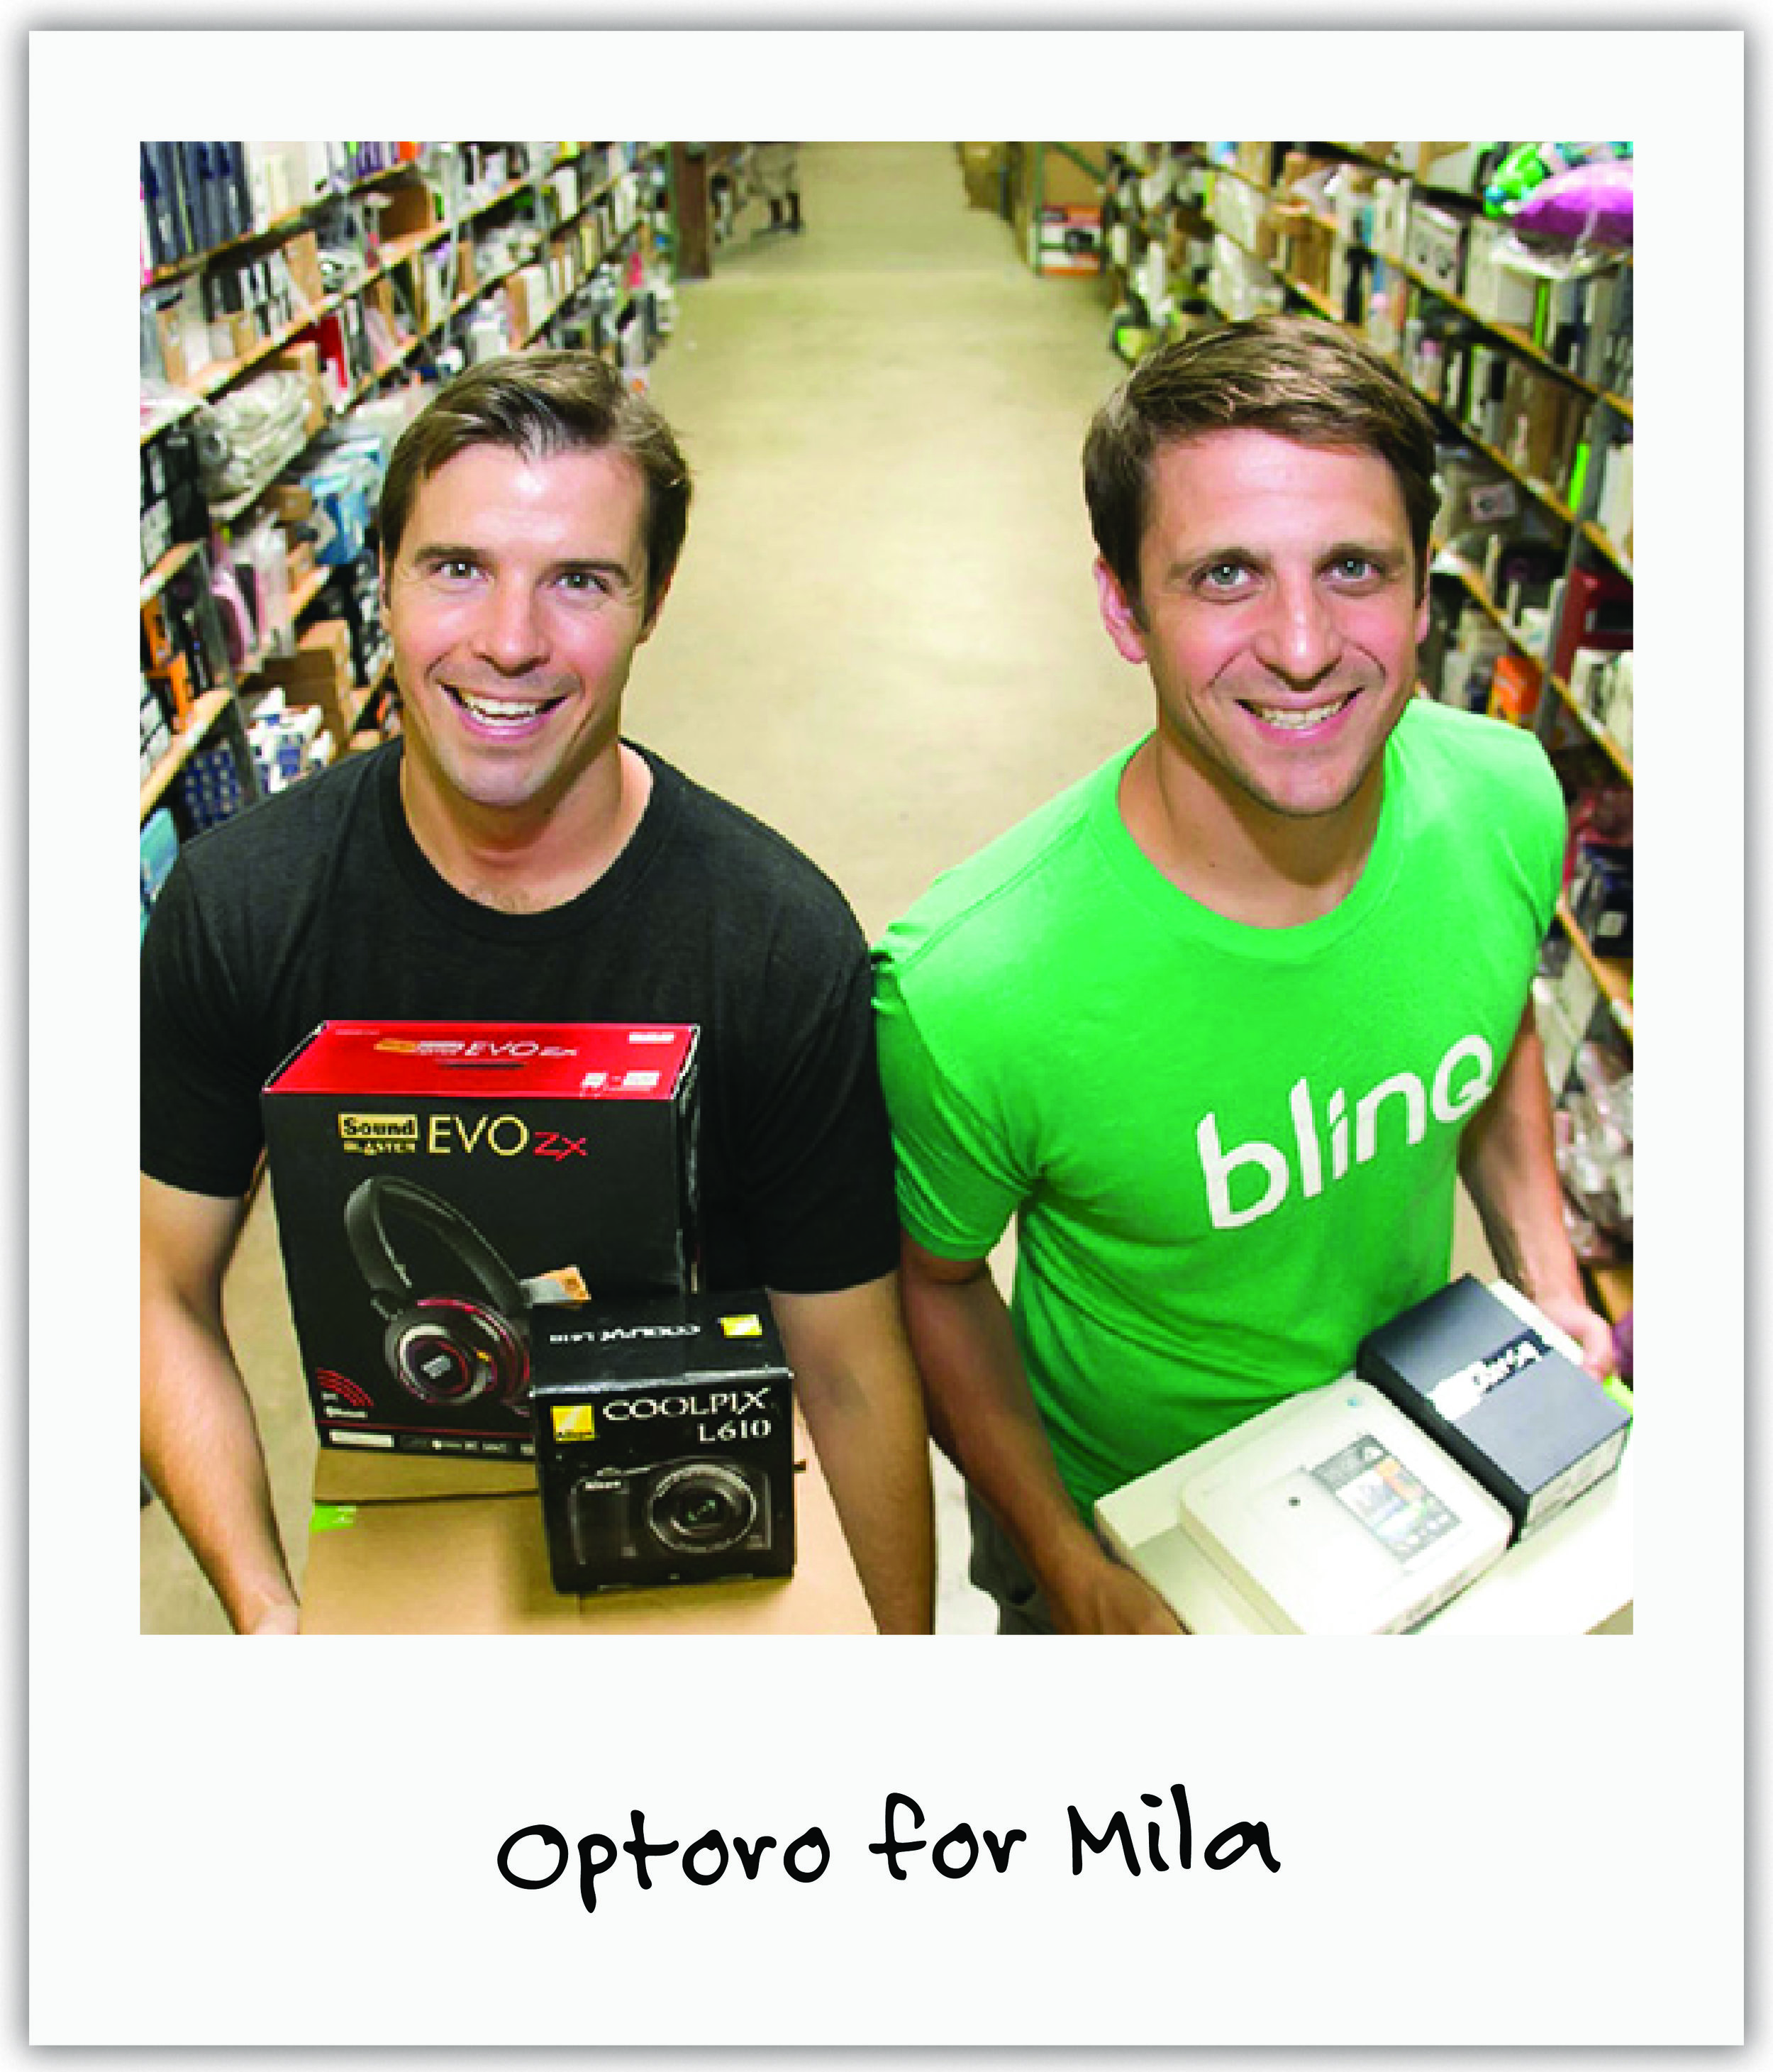 Optoro founders, Mila's uncle Adam and friend Tobin, raced along side us to help us get traction by graciously sponsoring our DC gala and donating items to our numerous auctions.